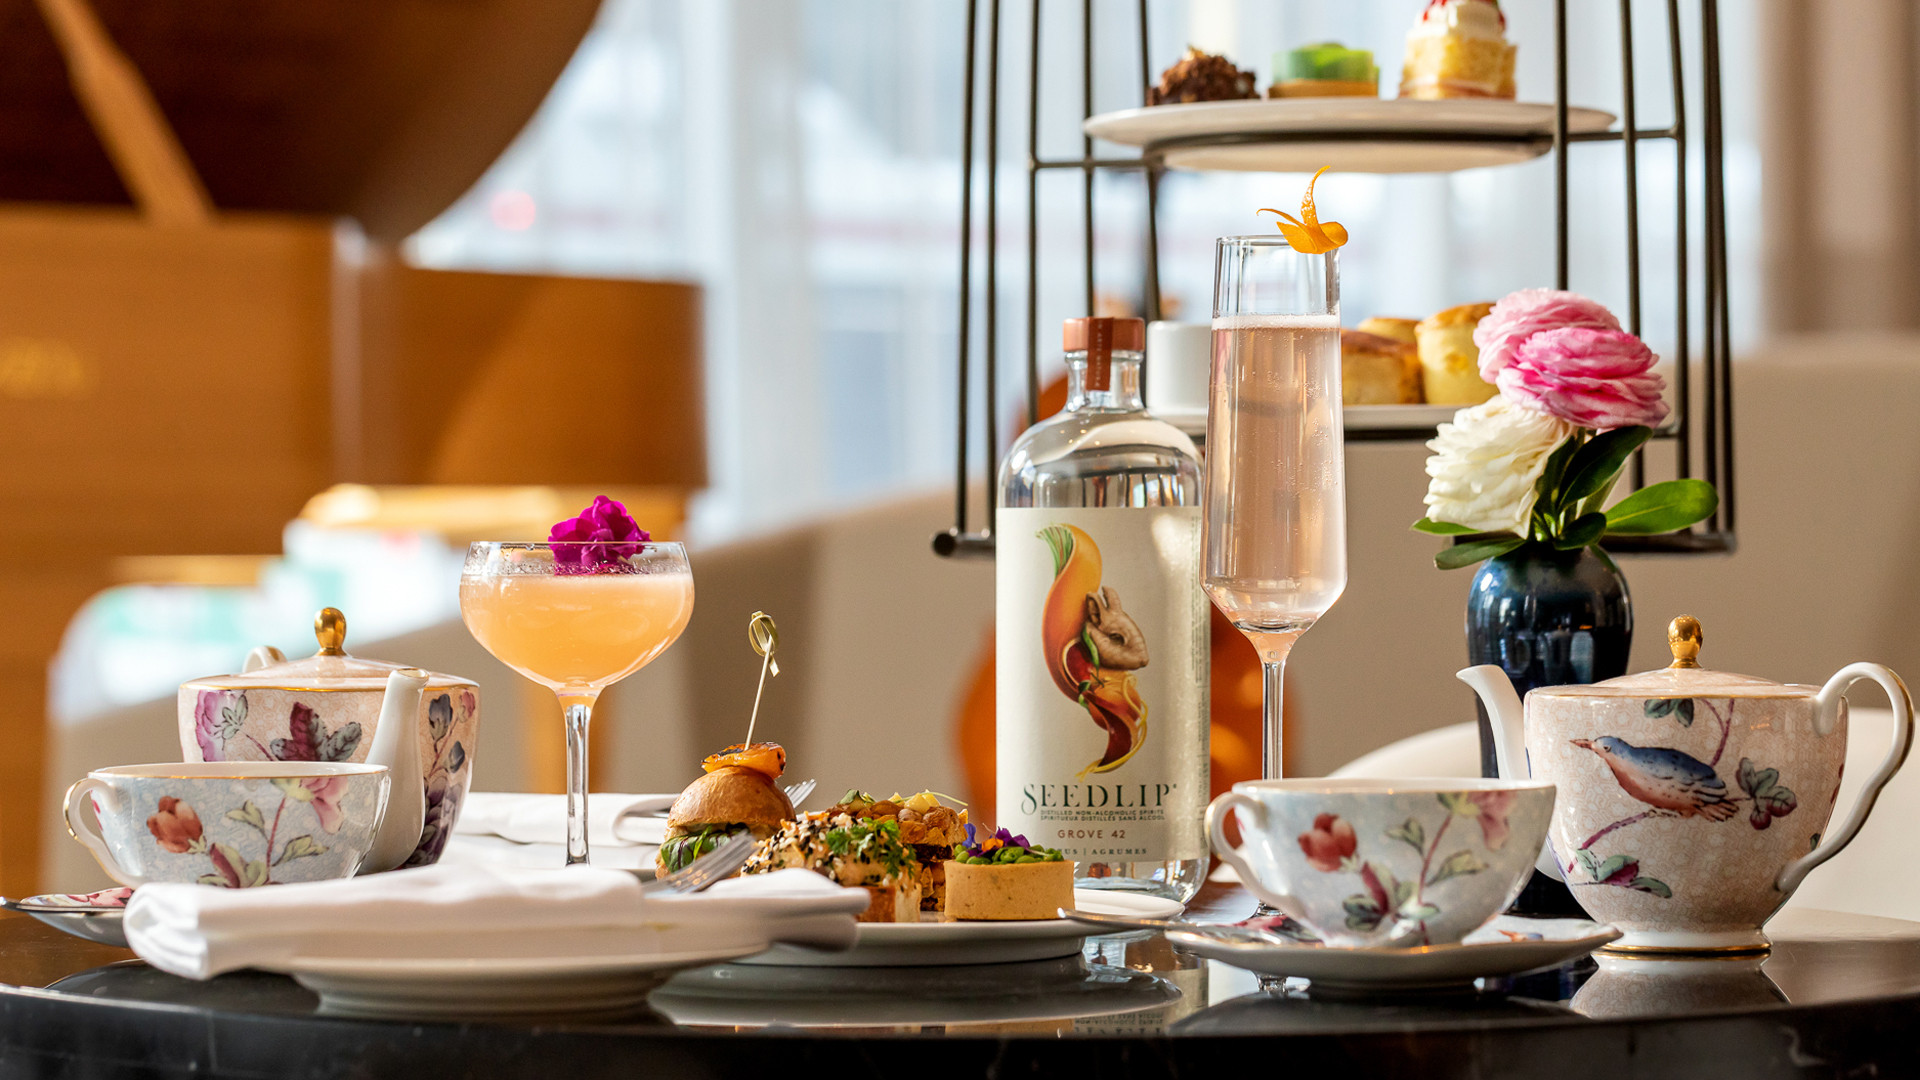 Seedlip afternoon tea at the Shangri-La Hotel Toronto